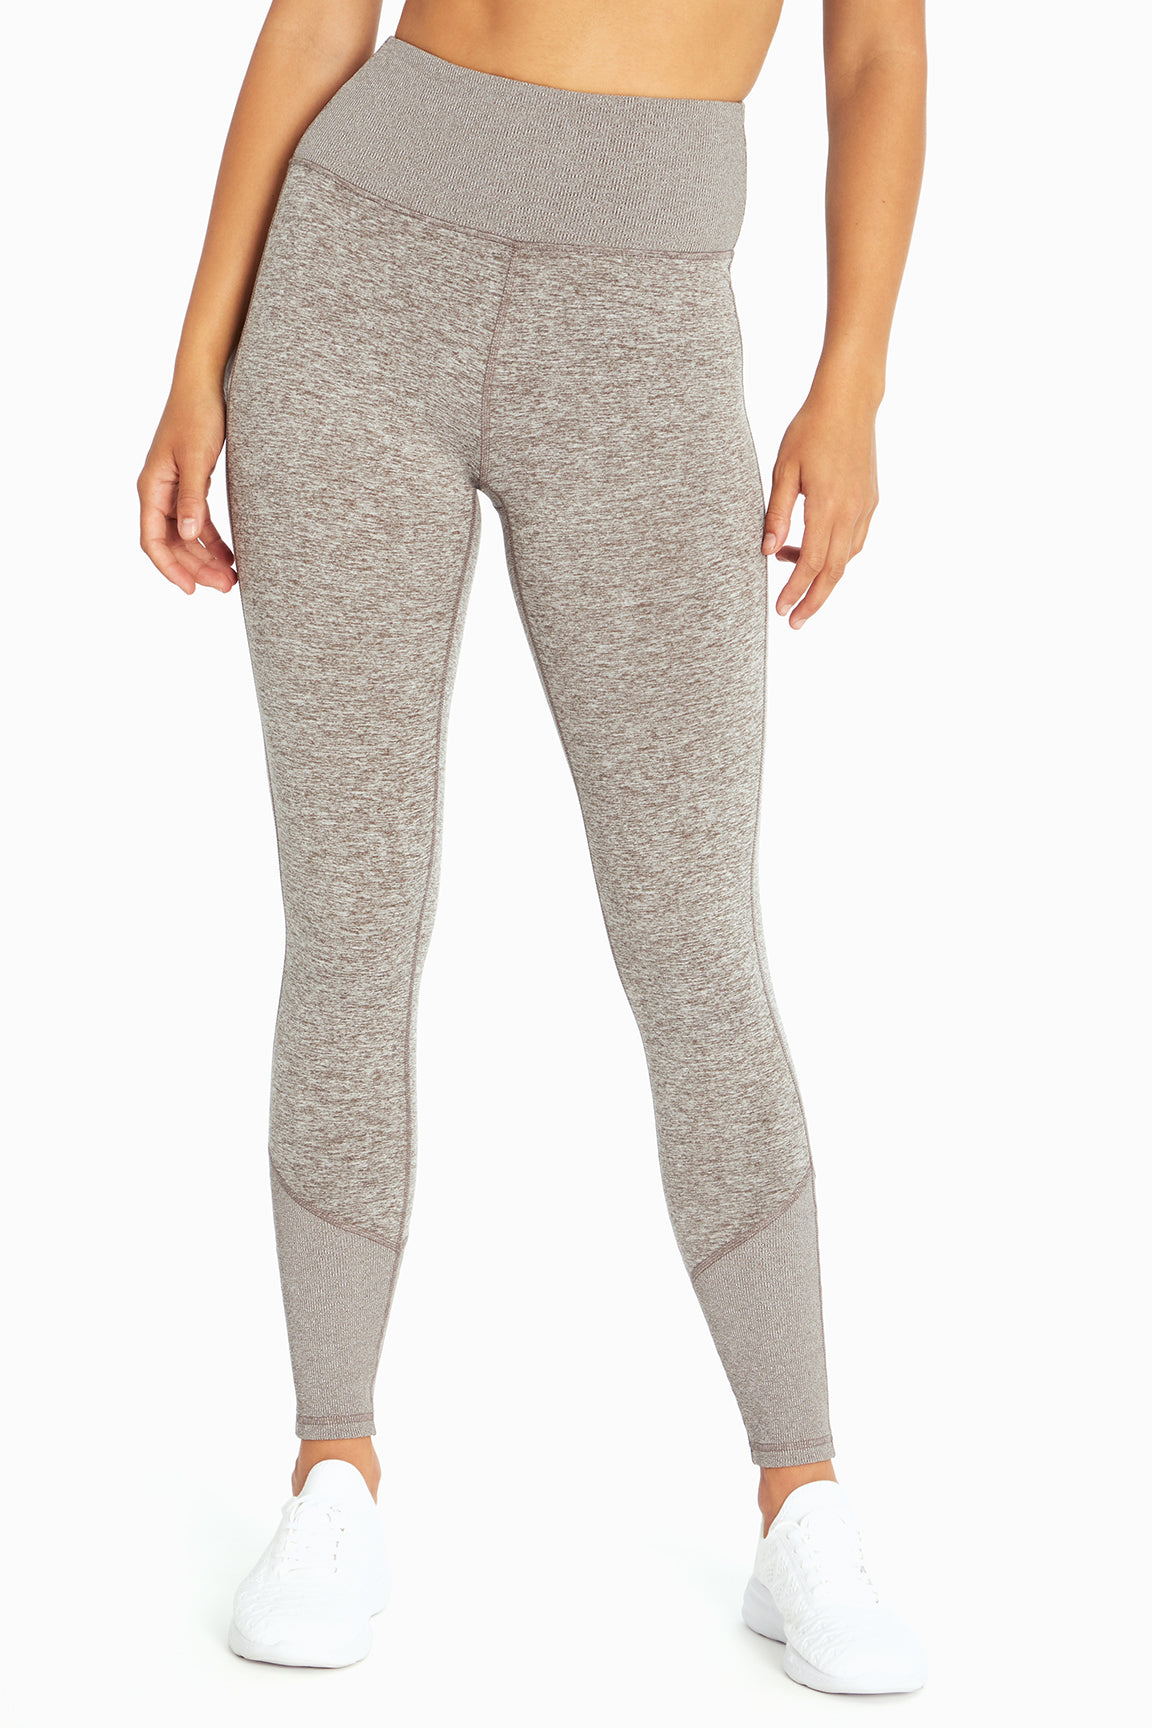 Cozy Heather Legging (H. Plum Kitten)